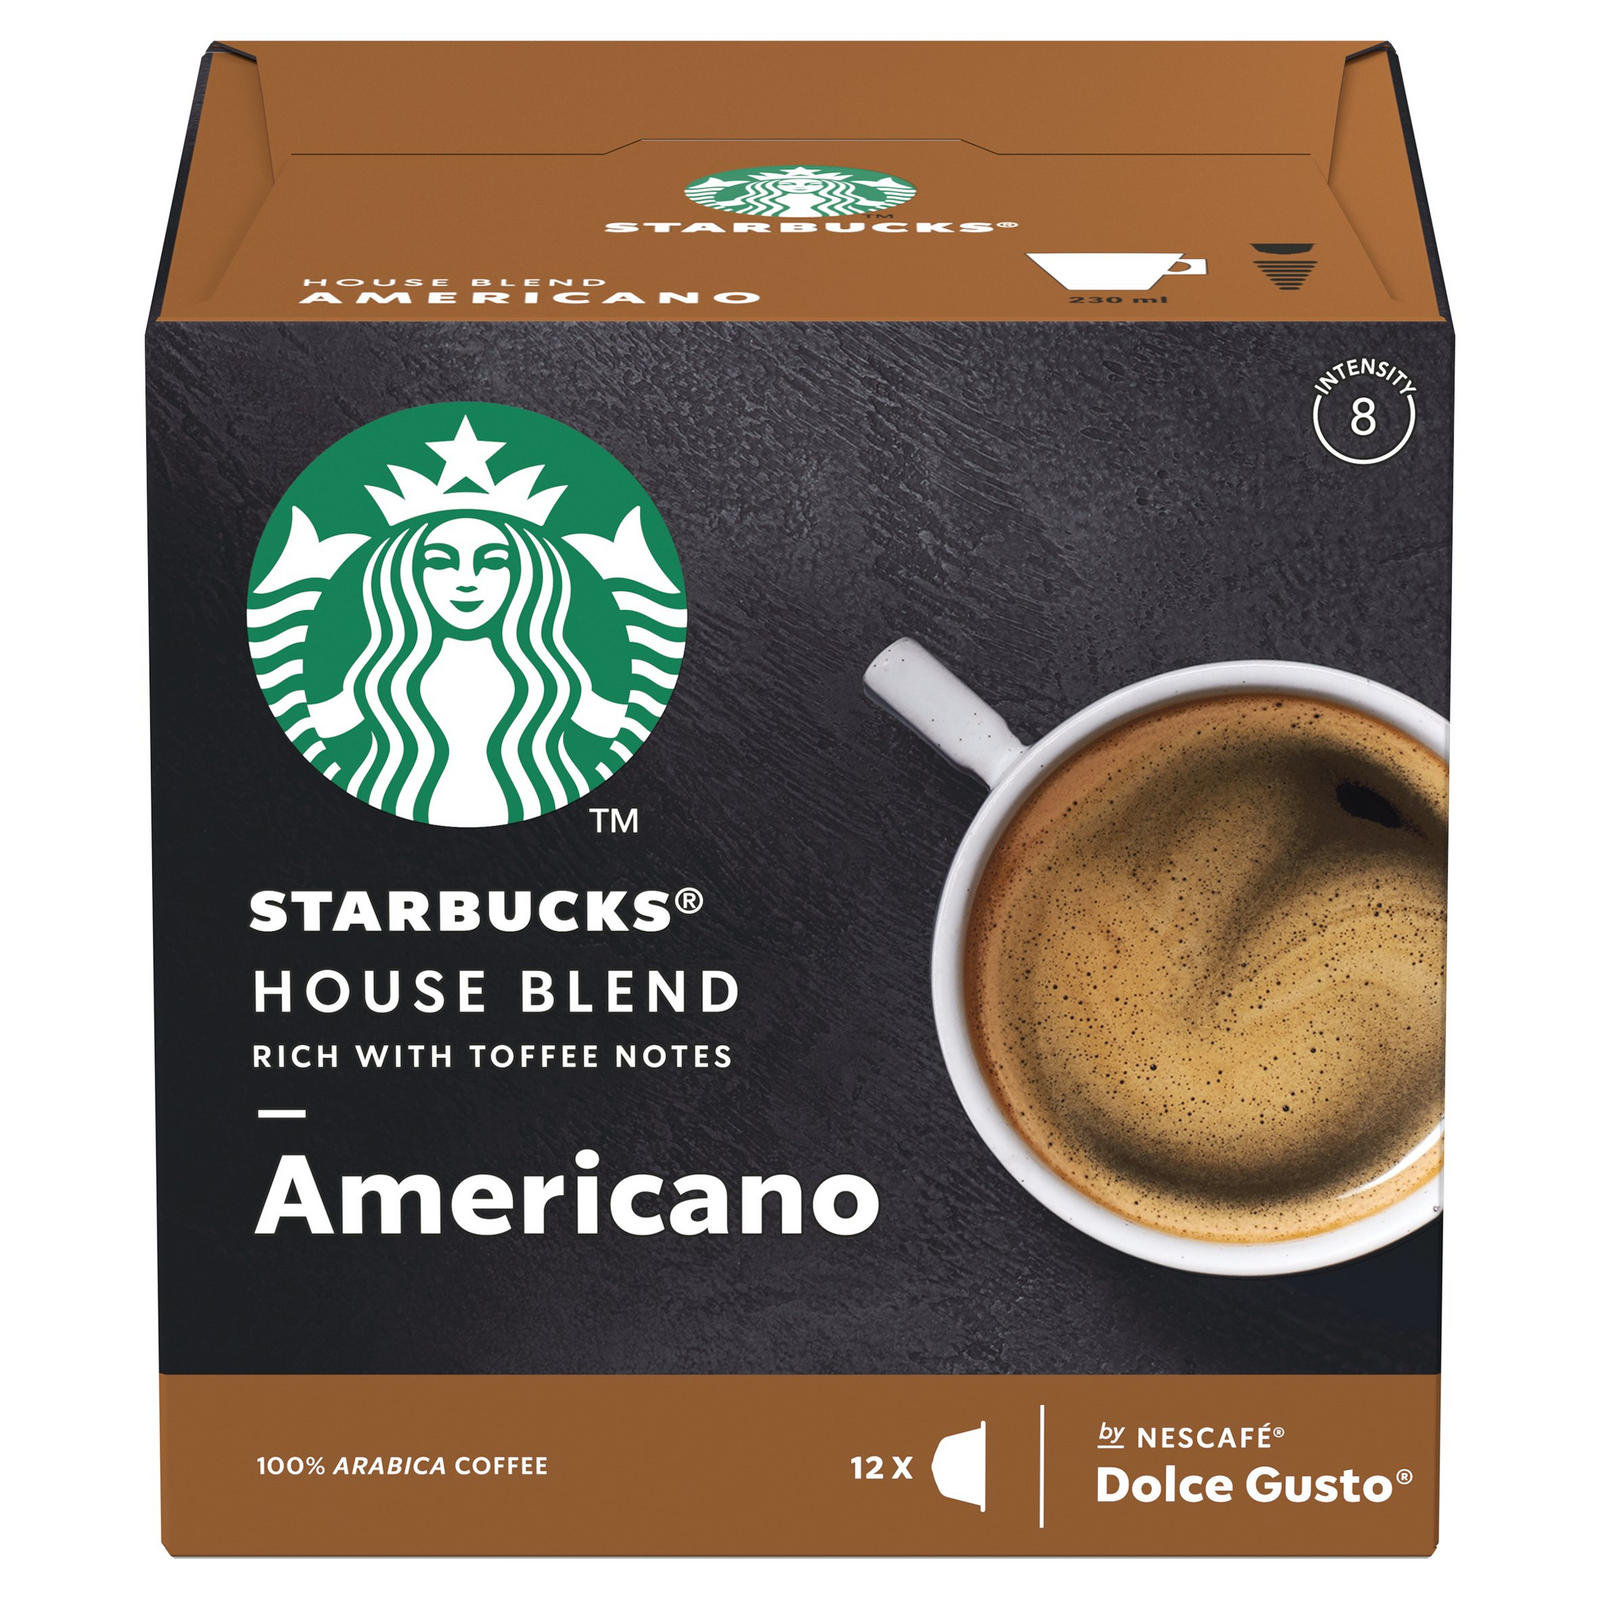 STARBUCKS by NESCAFÉ DOLCE GUSTO Americano House Blend ...